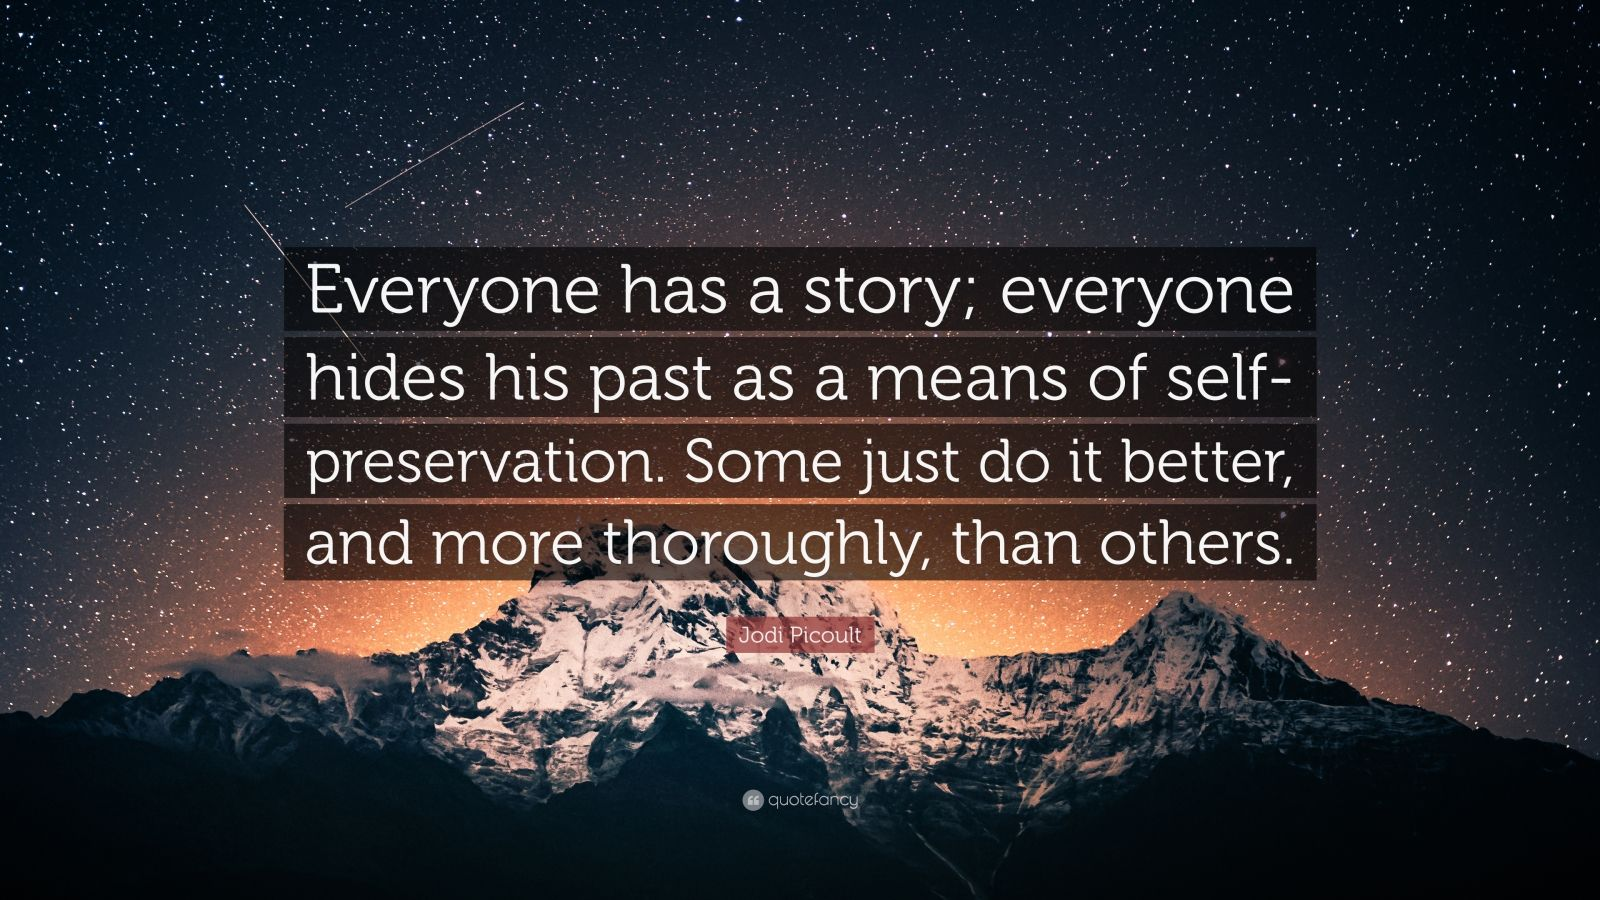 """Jodi Picoult Quote: """"Everyone has a story; everyone hides his past as a means of self-preservation. Some just do it better, and more thoroughly, than others."""""""